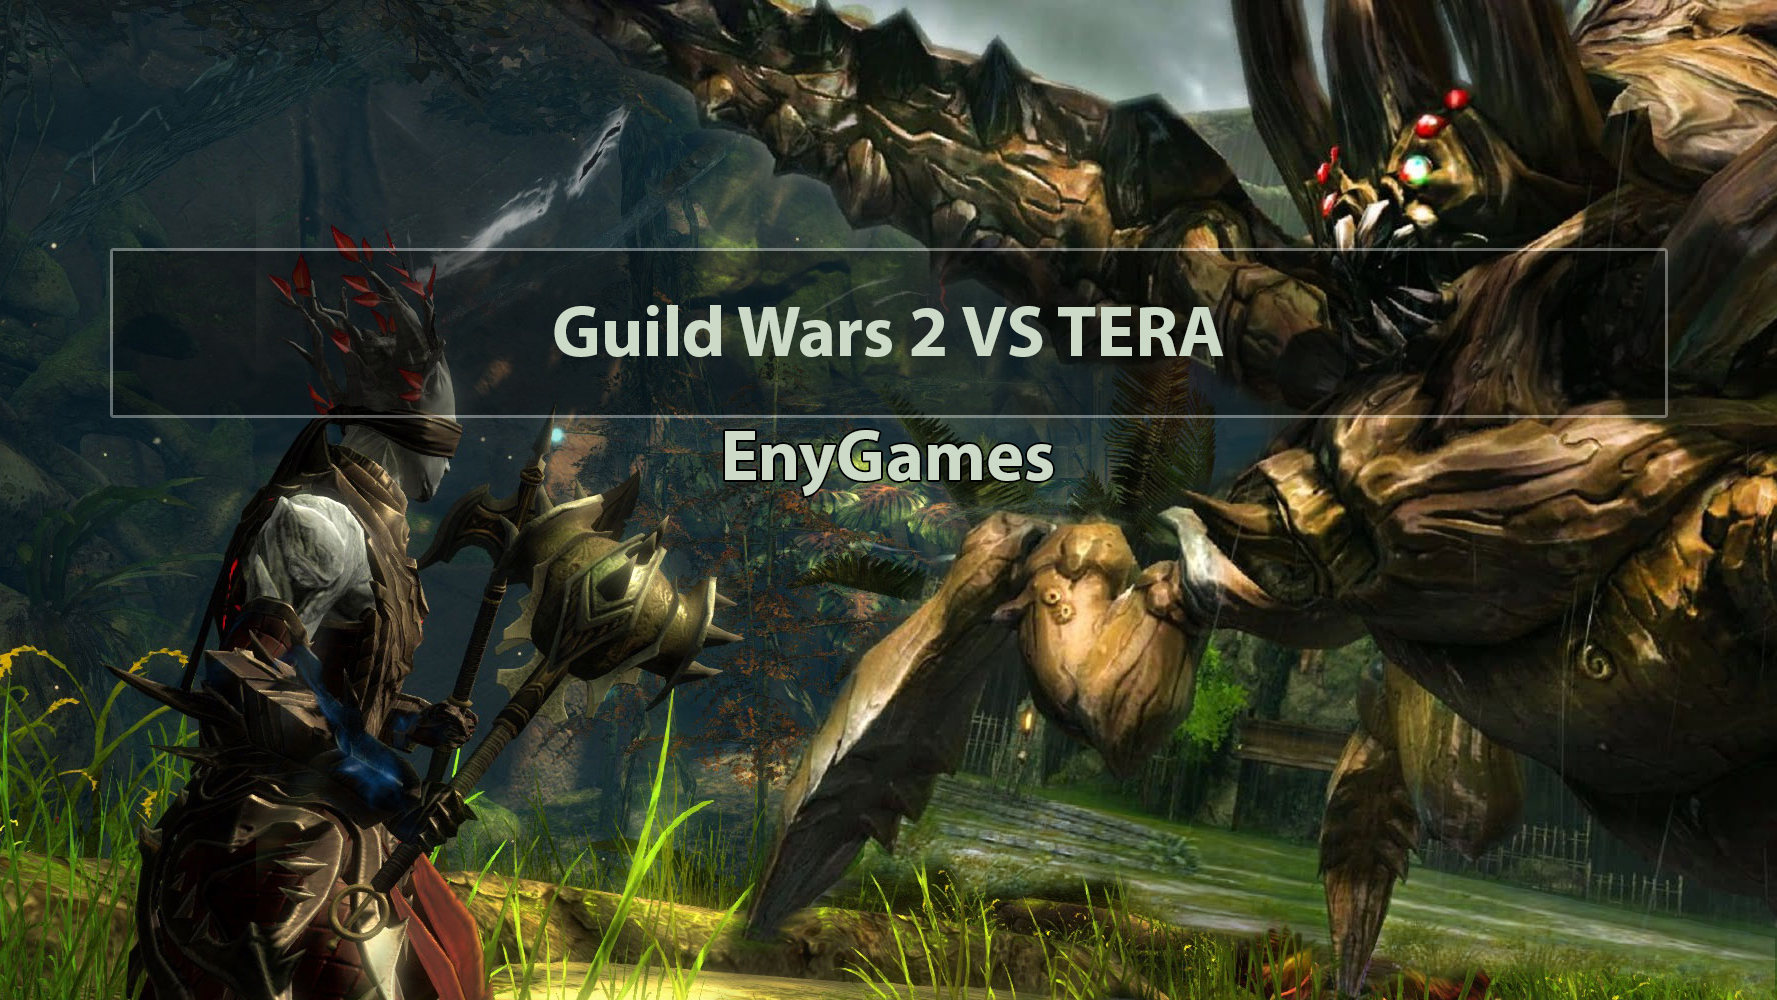 Guild Wars 2 VS TERA Online